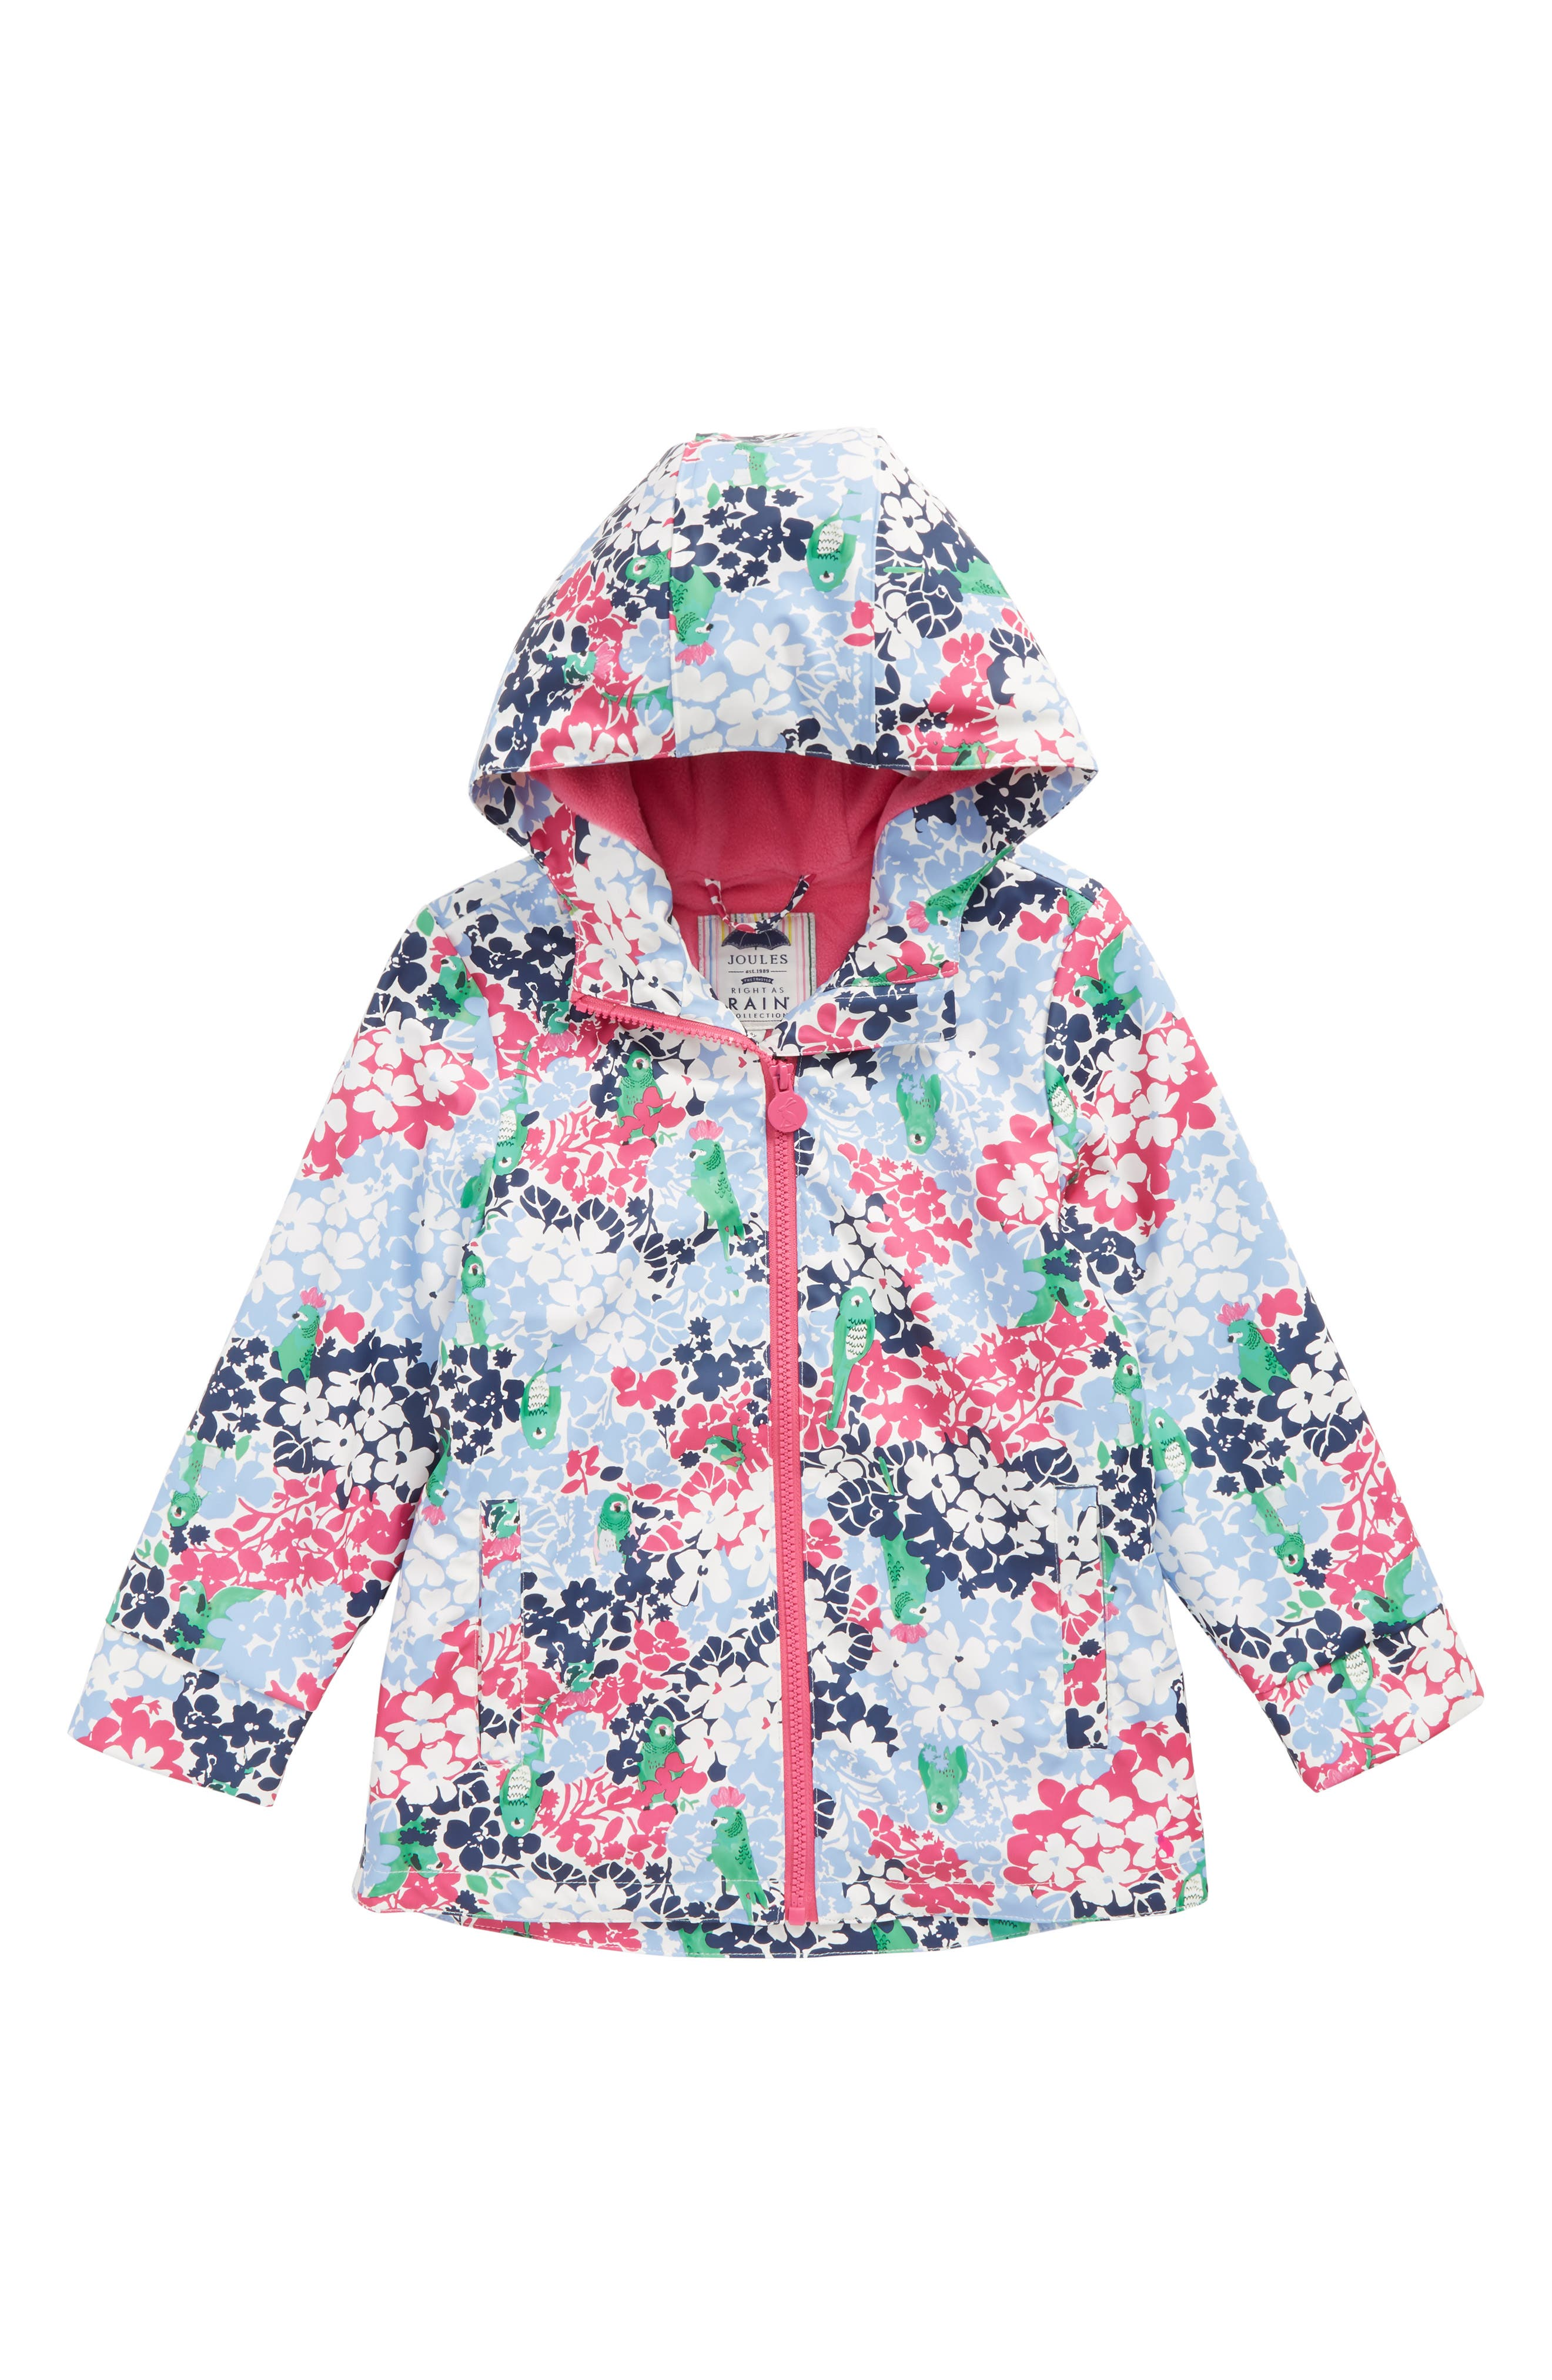 Main Image - Joules Fleece Lined Rain Jacket (Toddler Girls & Little Girls)